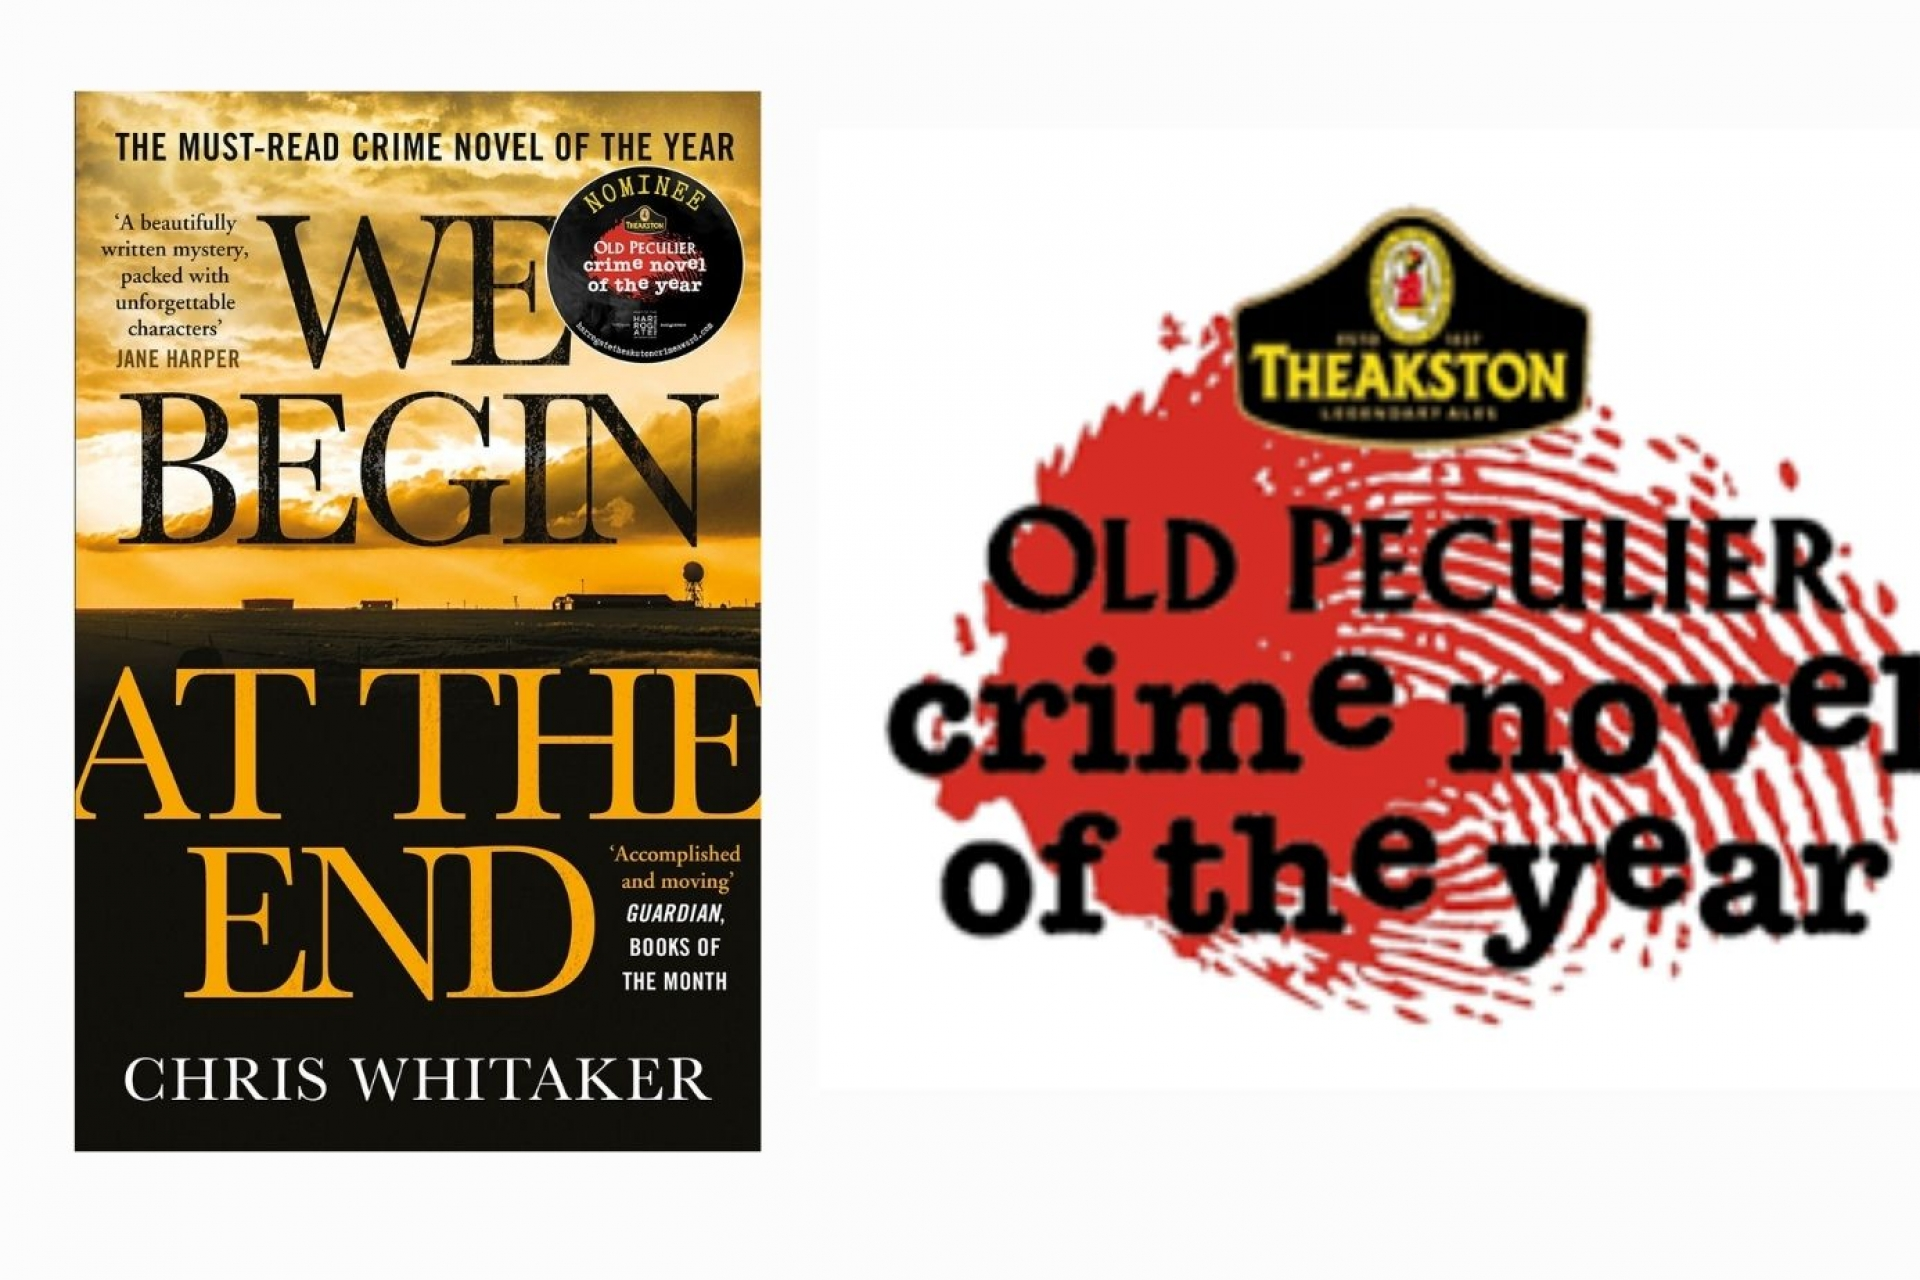 Chris Whitaker's We Begin At The End named Theakston Crime Novel of the Year